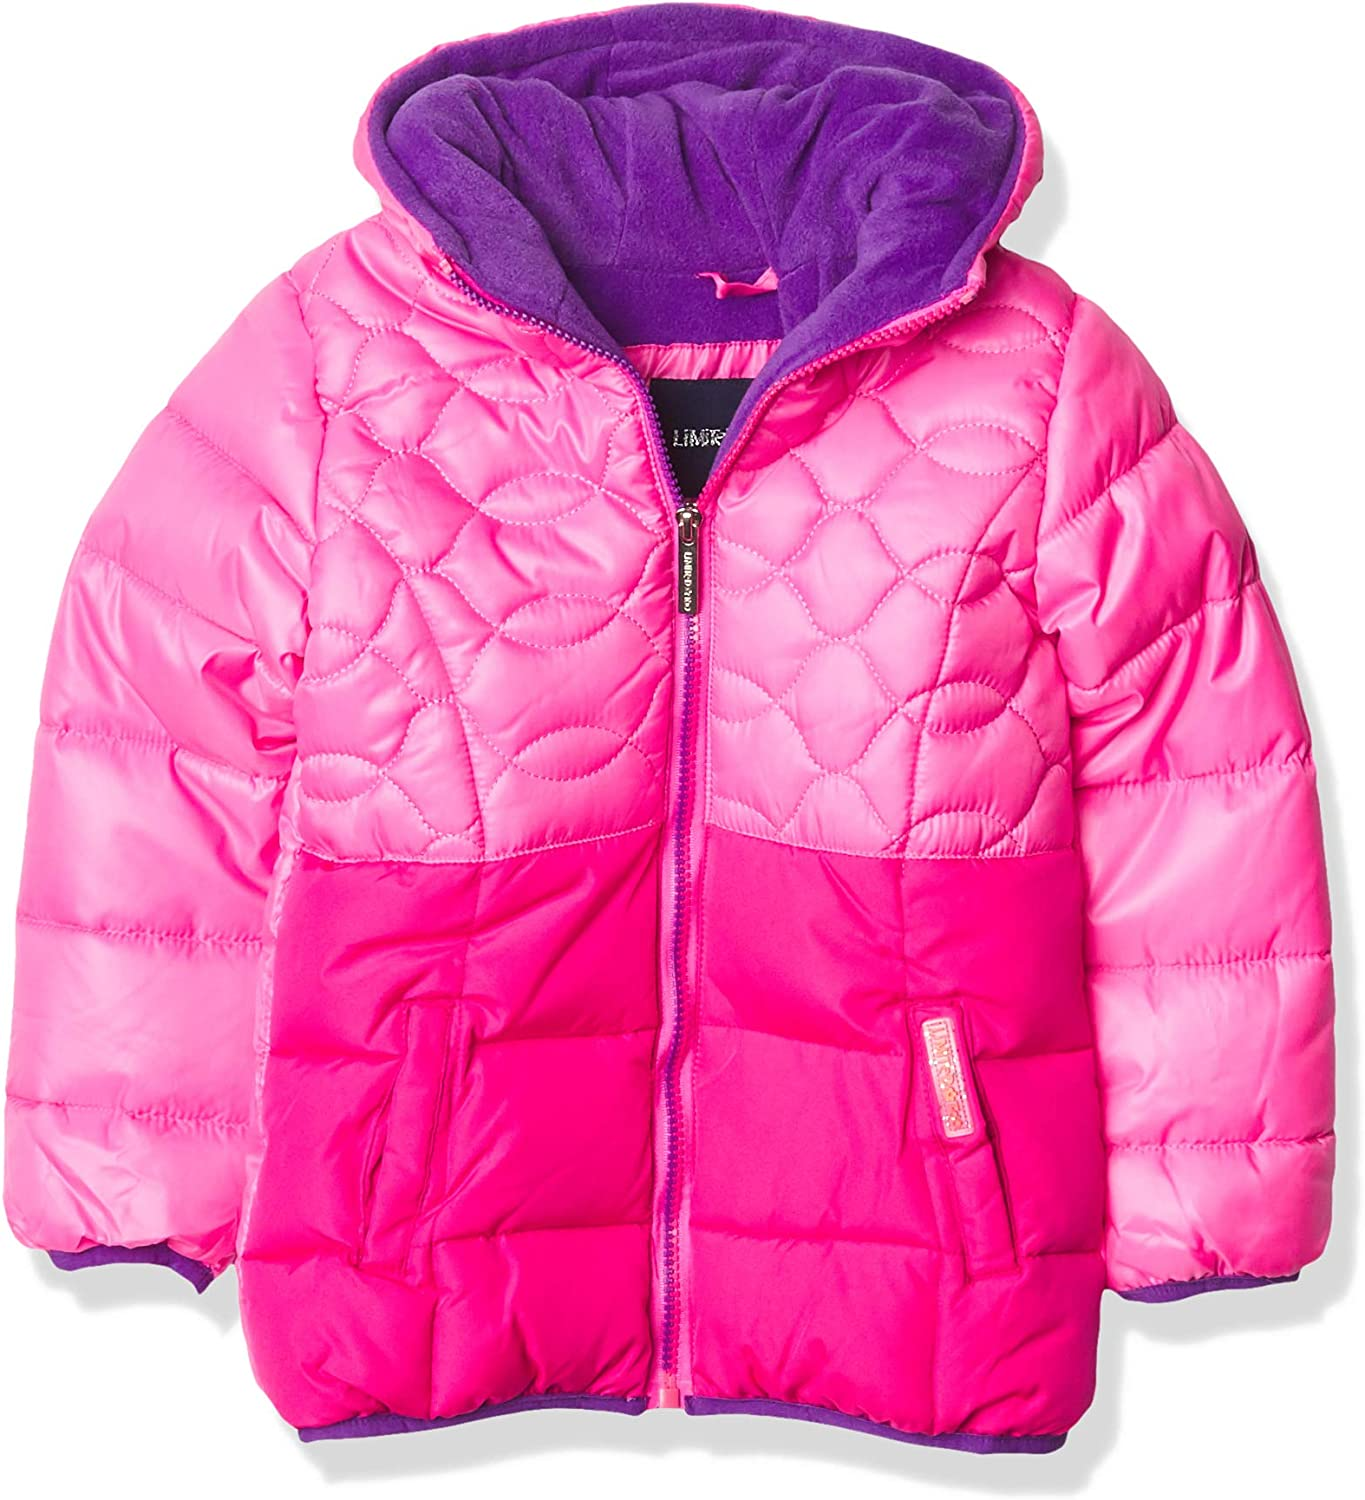 Popular product Limited shop Too Girls' Puffer Jacket